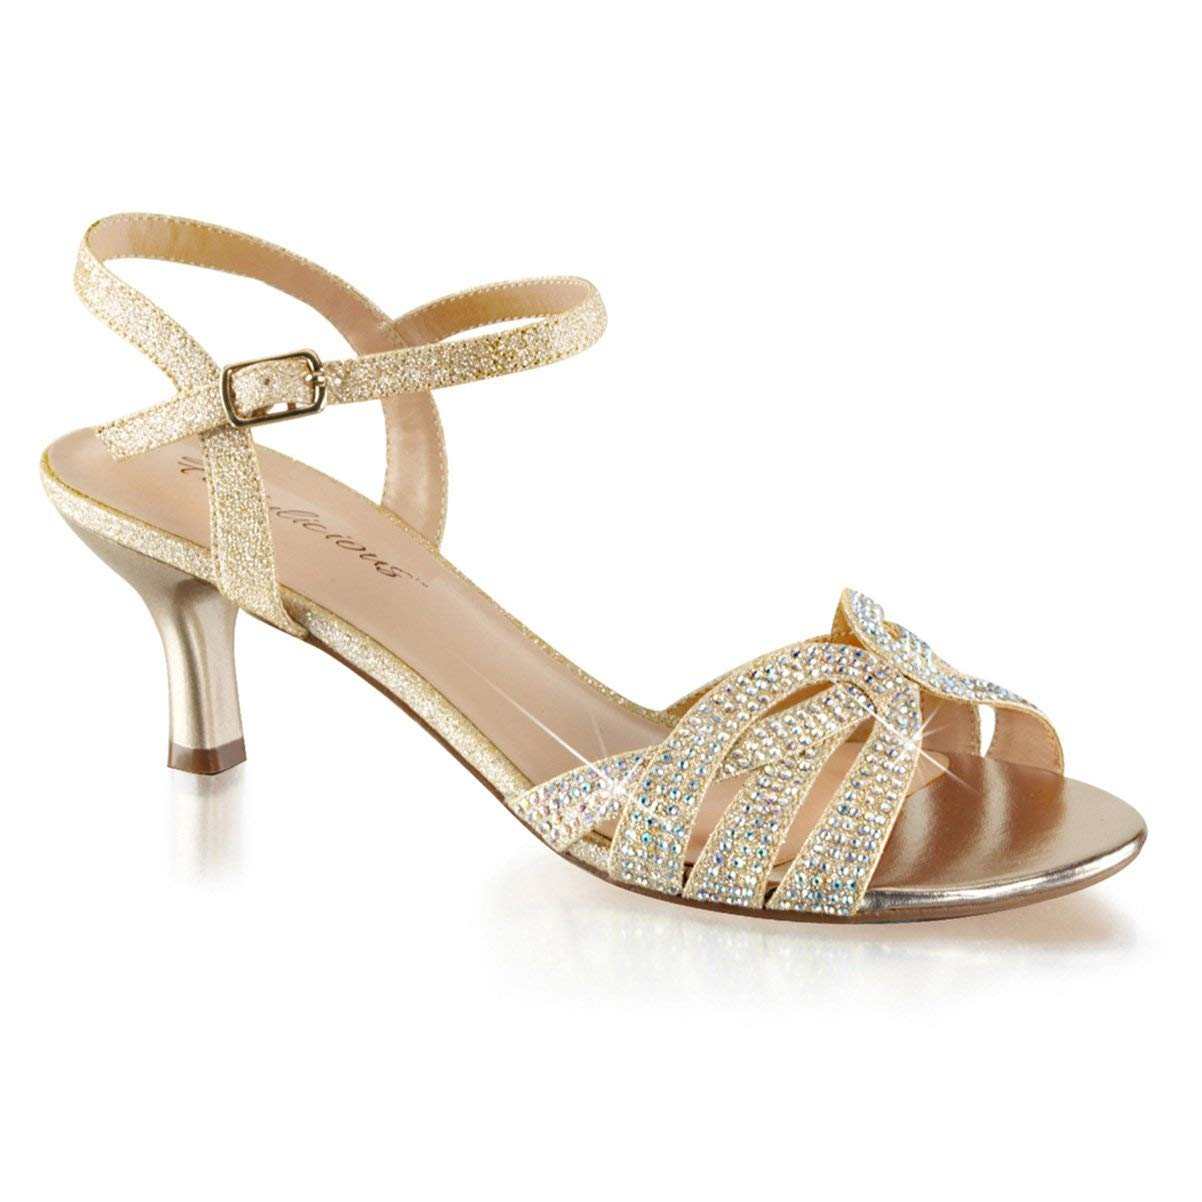 a2ca9882f0 Get Quotations · Summitfashions Womens Kitten Heel Sandals Sparkly Nude  Shoes Silver Rhinestone 2 1/2 inch Heel